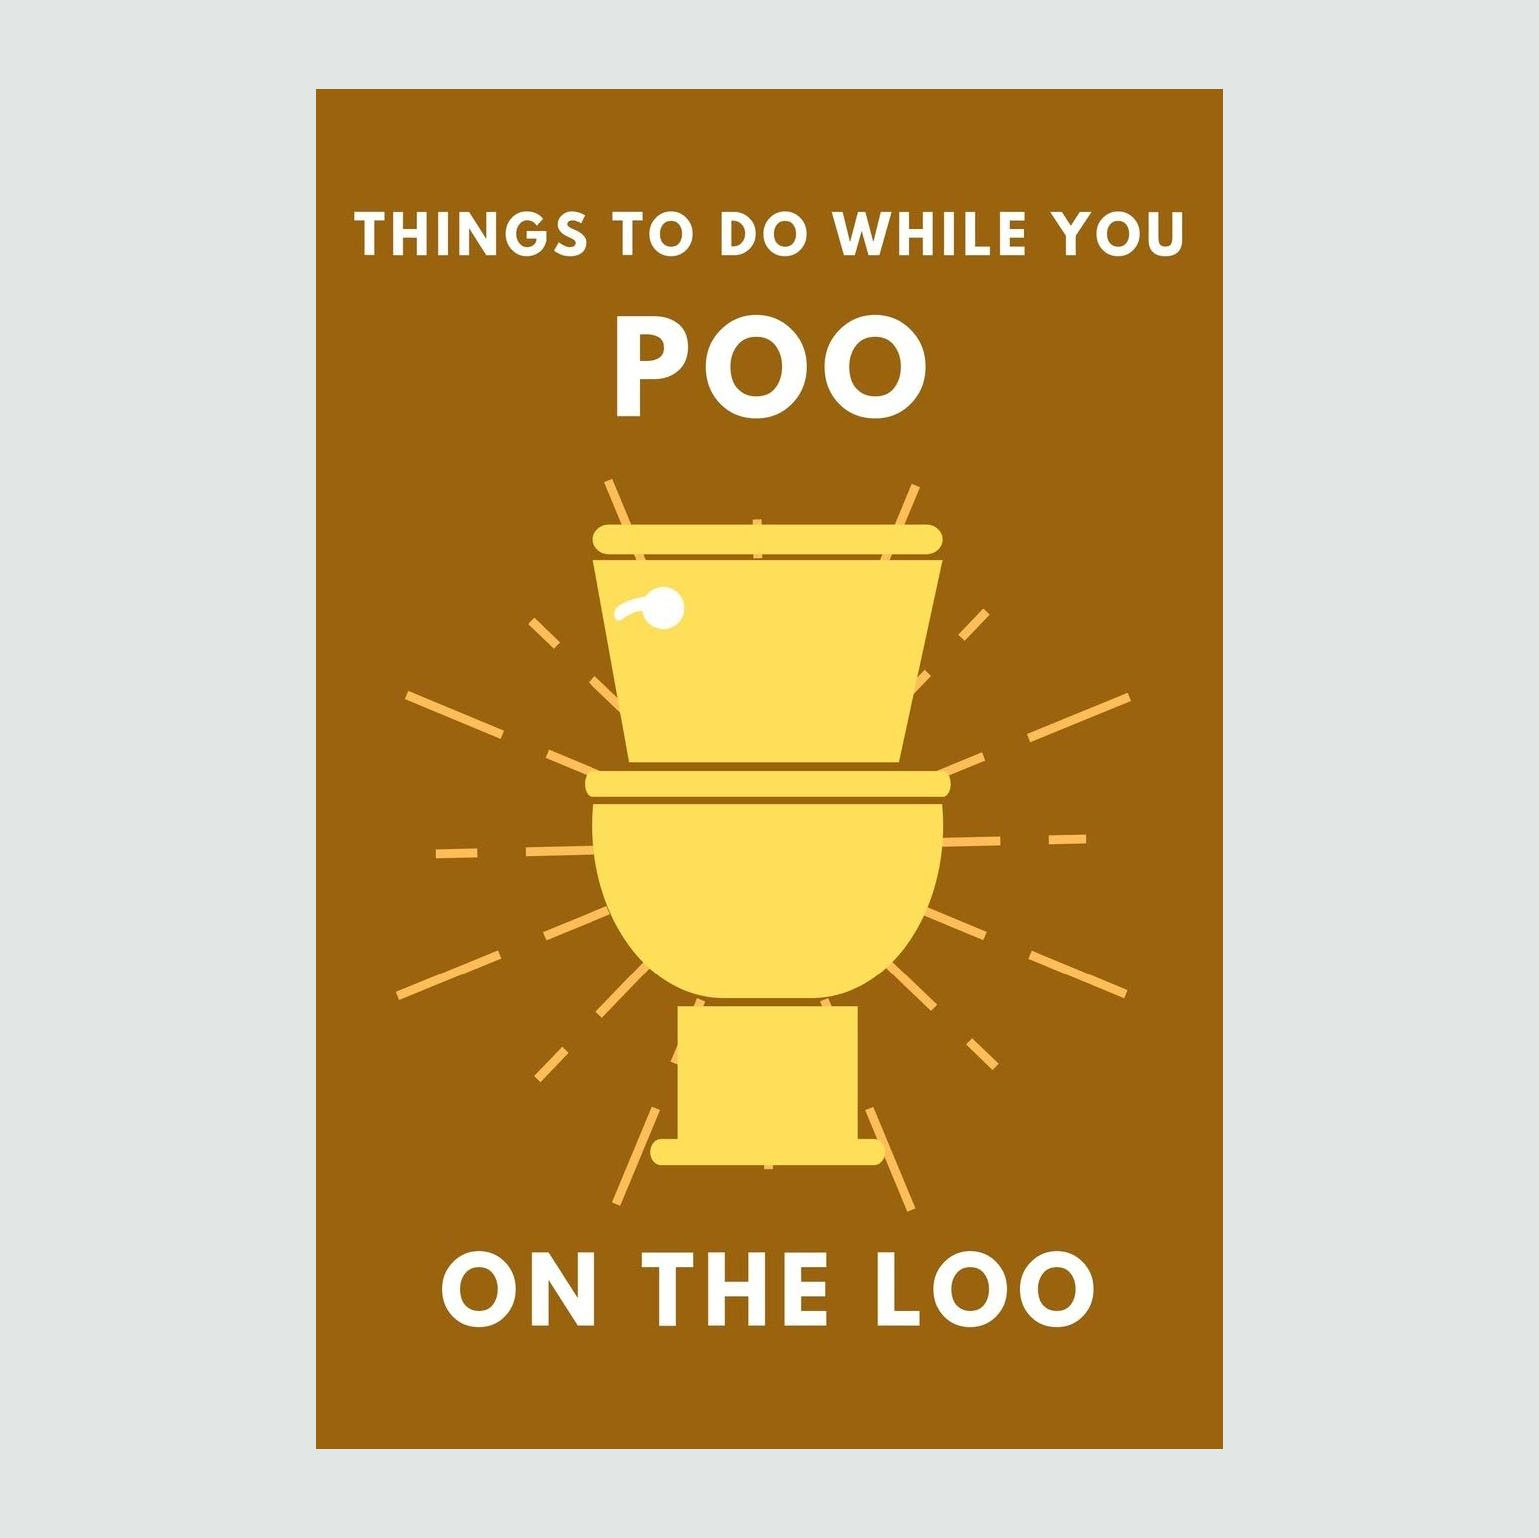 Things To Do While You Poo On The Loo: Activity Book